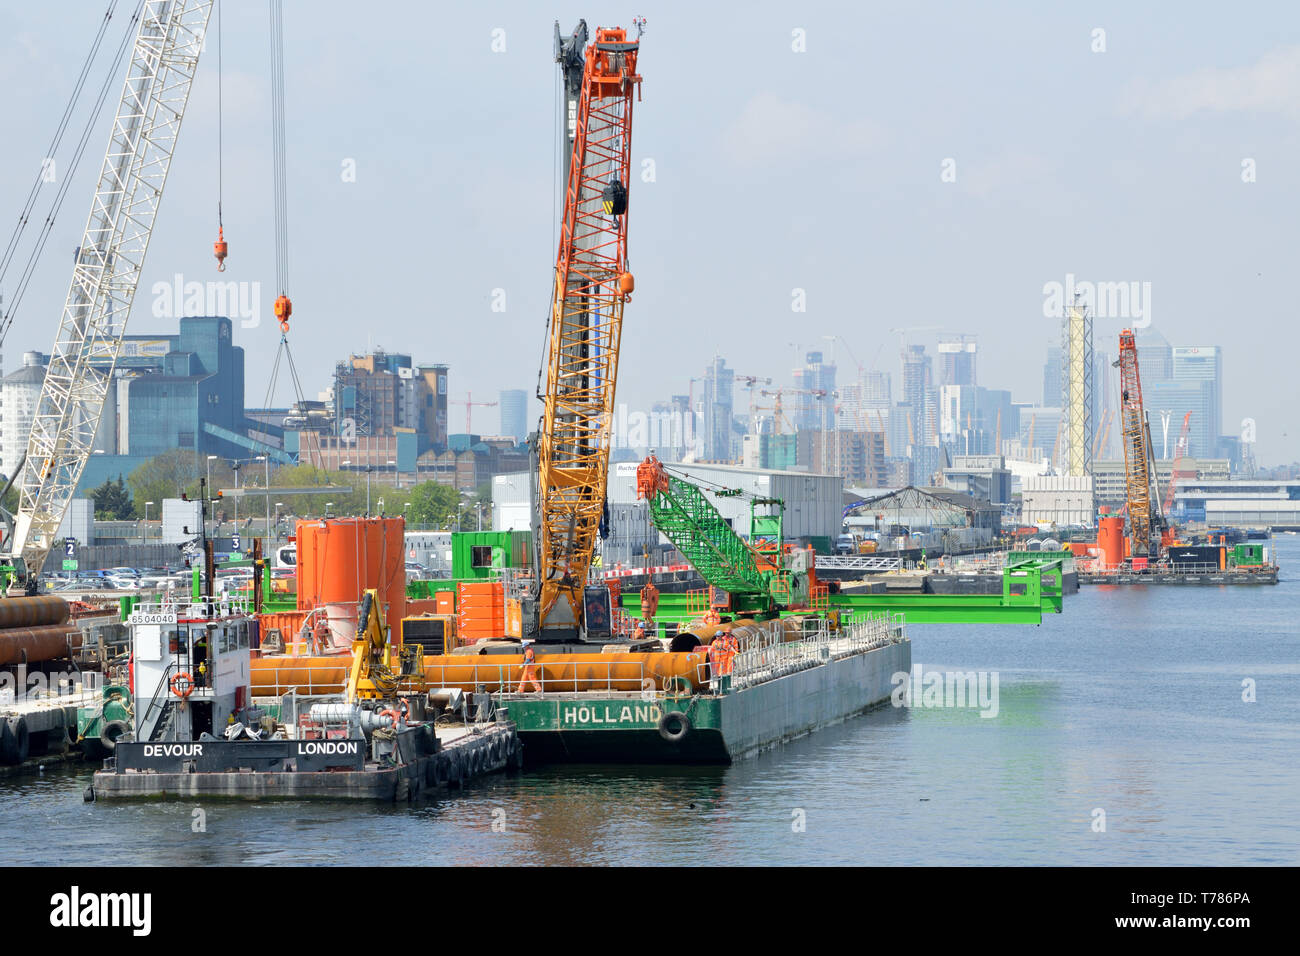 Tugs moving an engineering barge in the King George V Dock, London, as part of the London City Airport CADP expansion works Stock Photo